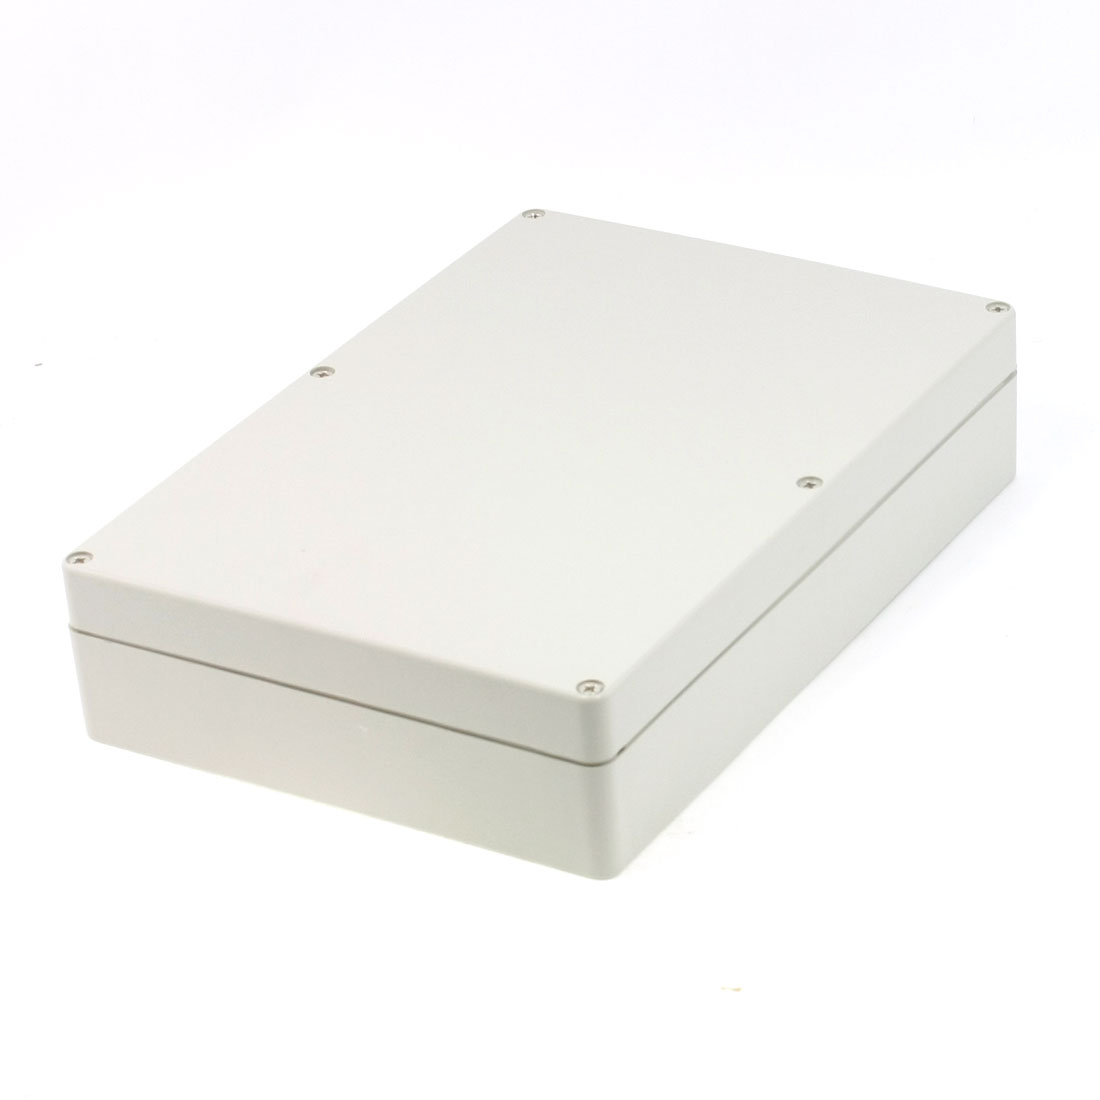 264mm-x-184mm-x-60mm-Waterproof-Plastic-Enclosure-Case-DIY-Junction-Box